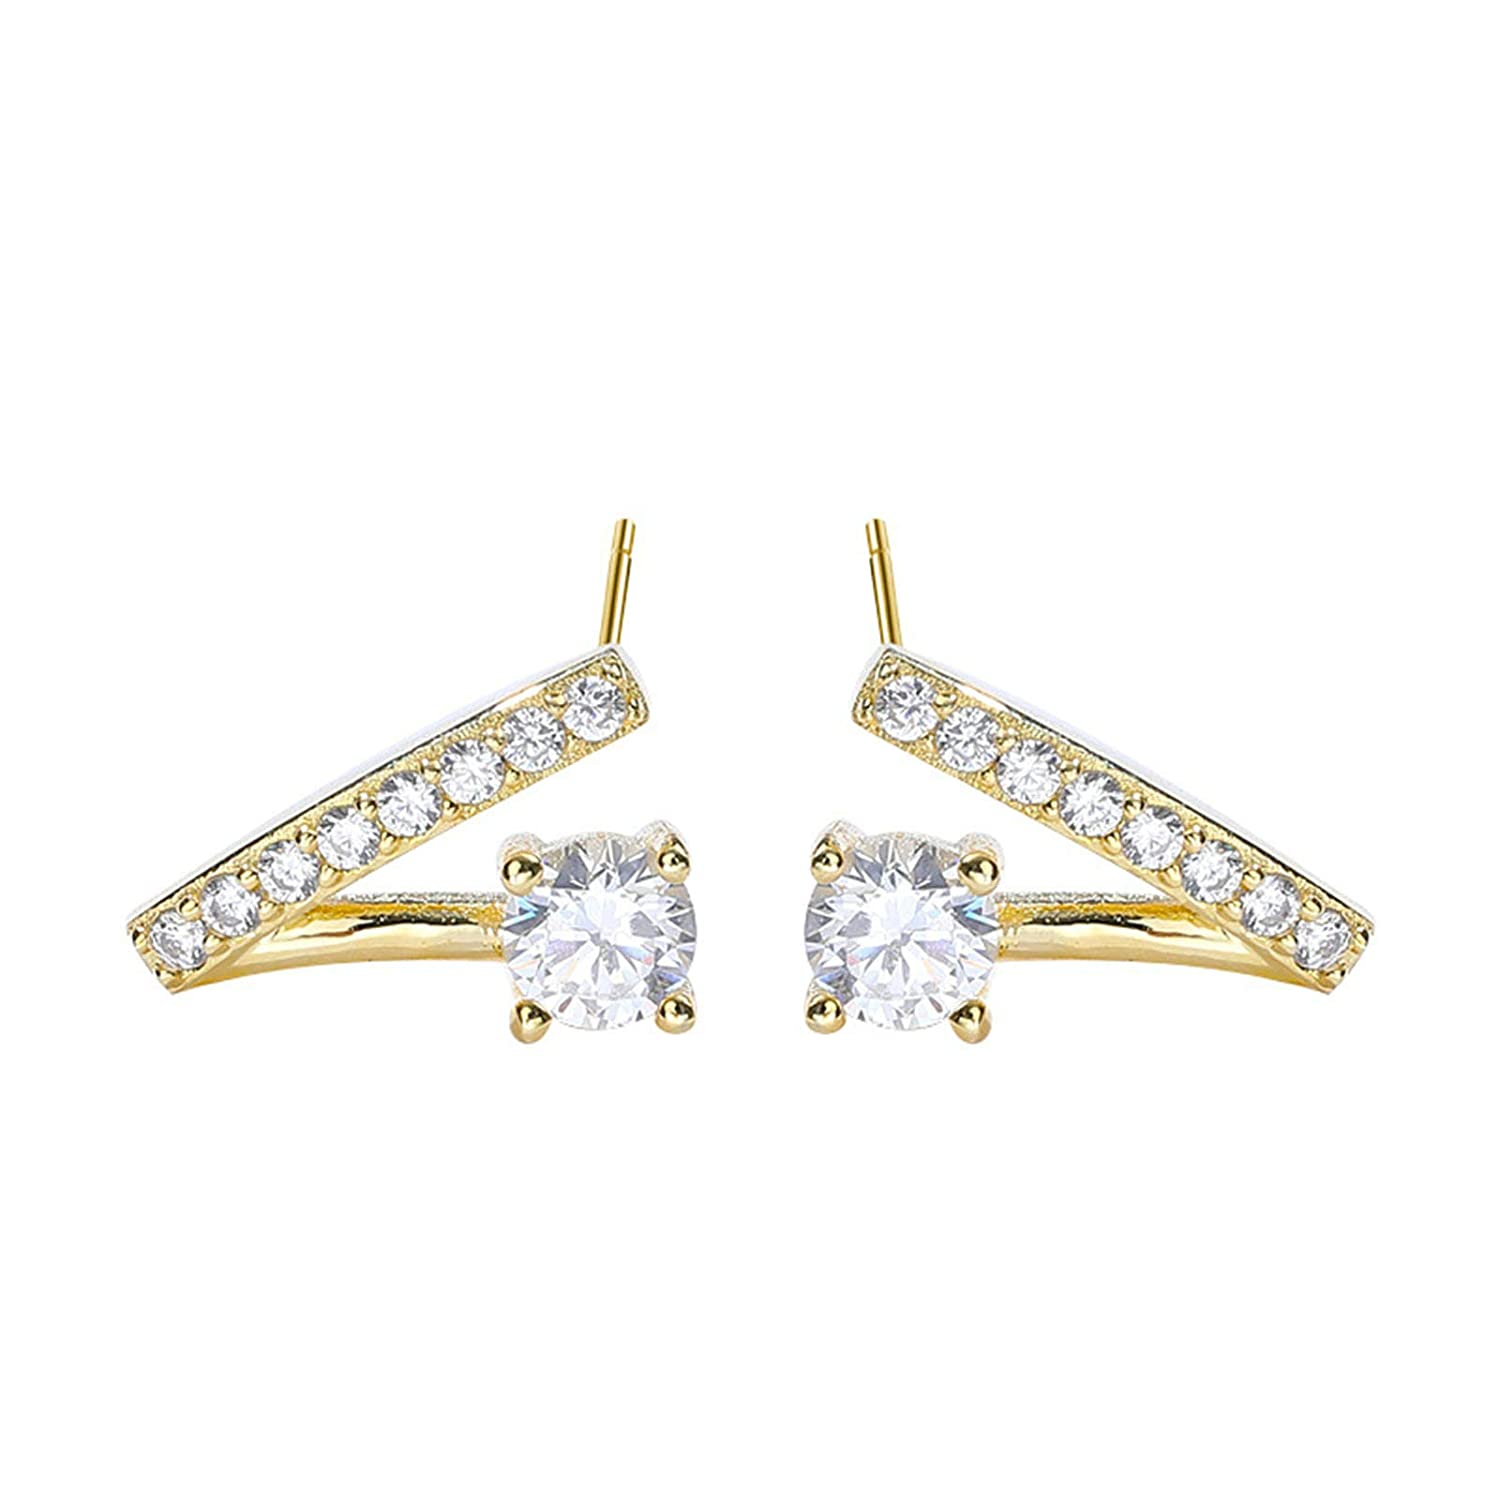 Adisaer Jewelry WomenS Studs Earrings Sterling Silver Gold V-Shaped Cubic Zirconia LW 8X8CM Round Shape Cubic Zirconia Engagement Earrings